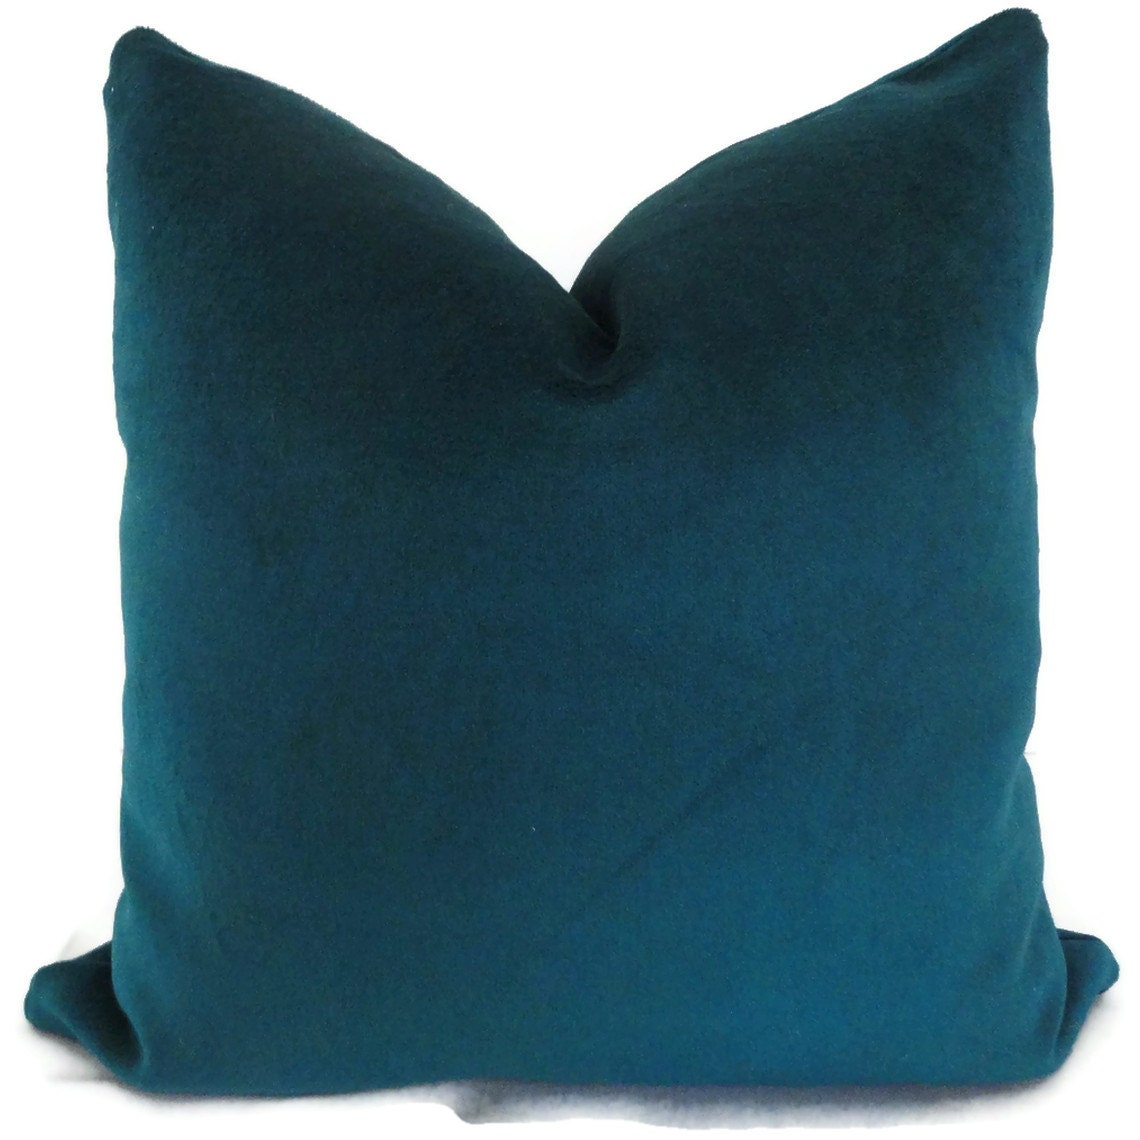 Peacock Blue Throw Pillow : Velvet Peacock Blue Decorative Pillow Cover 18x18 by PopOColor